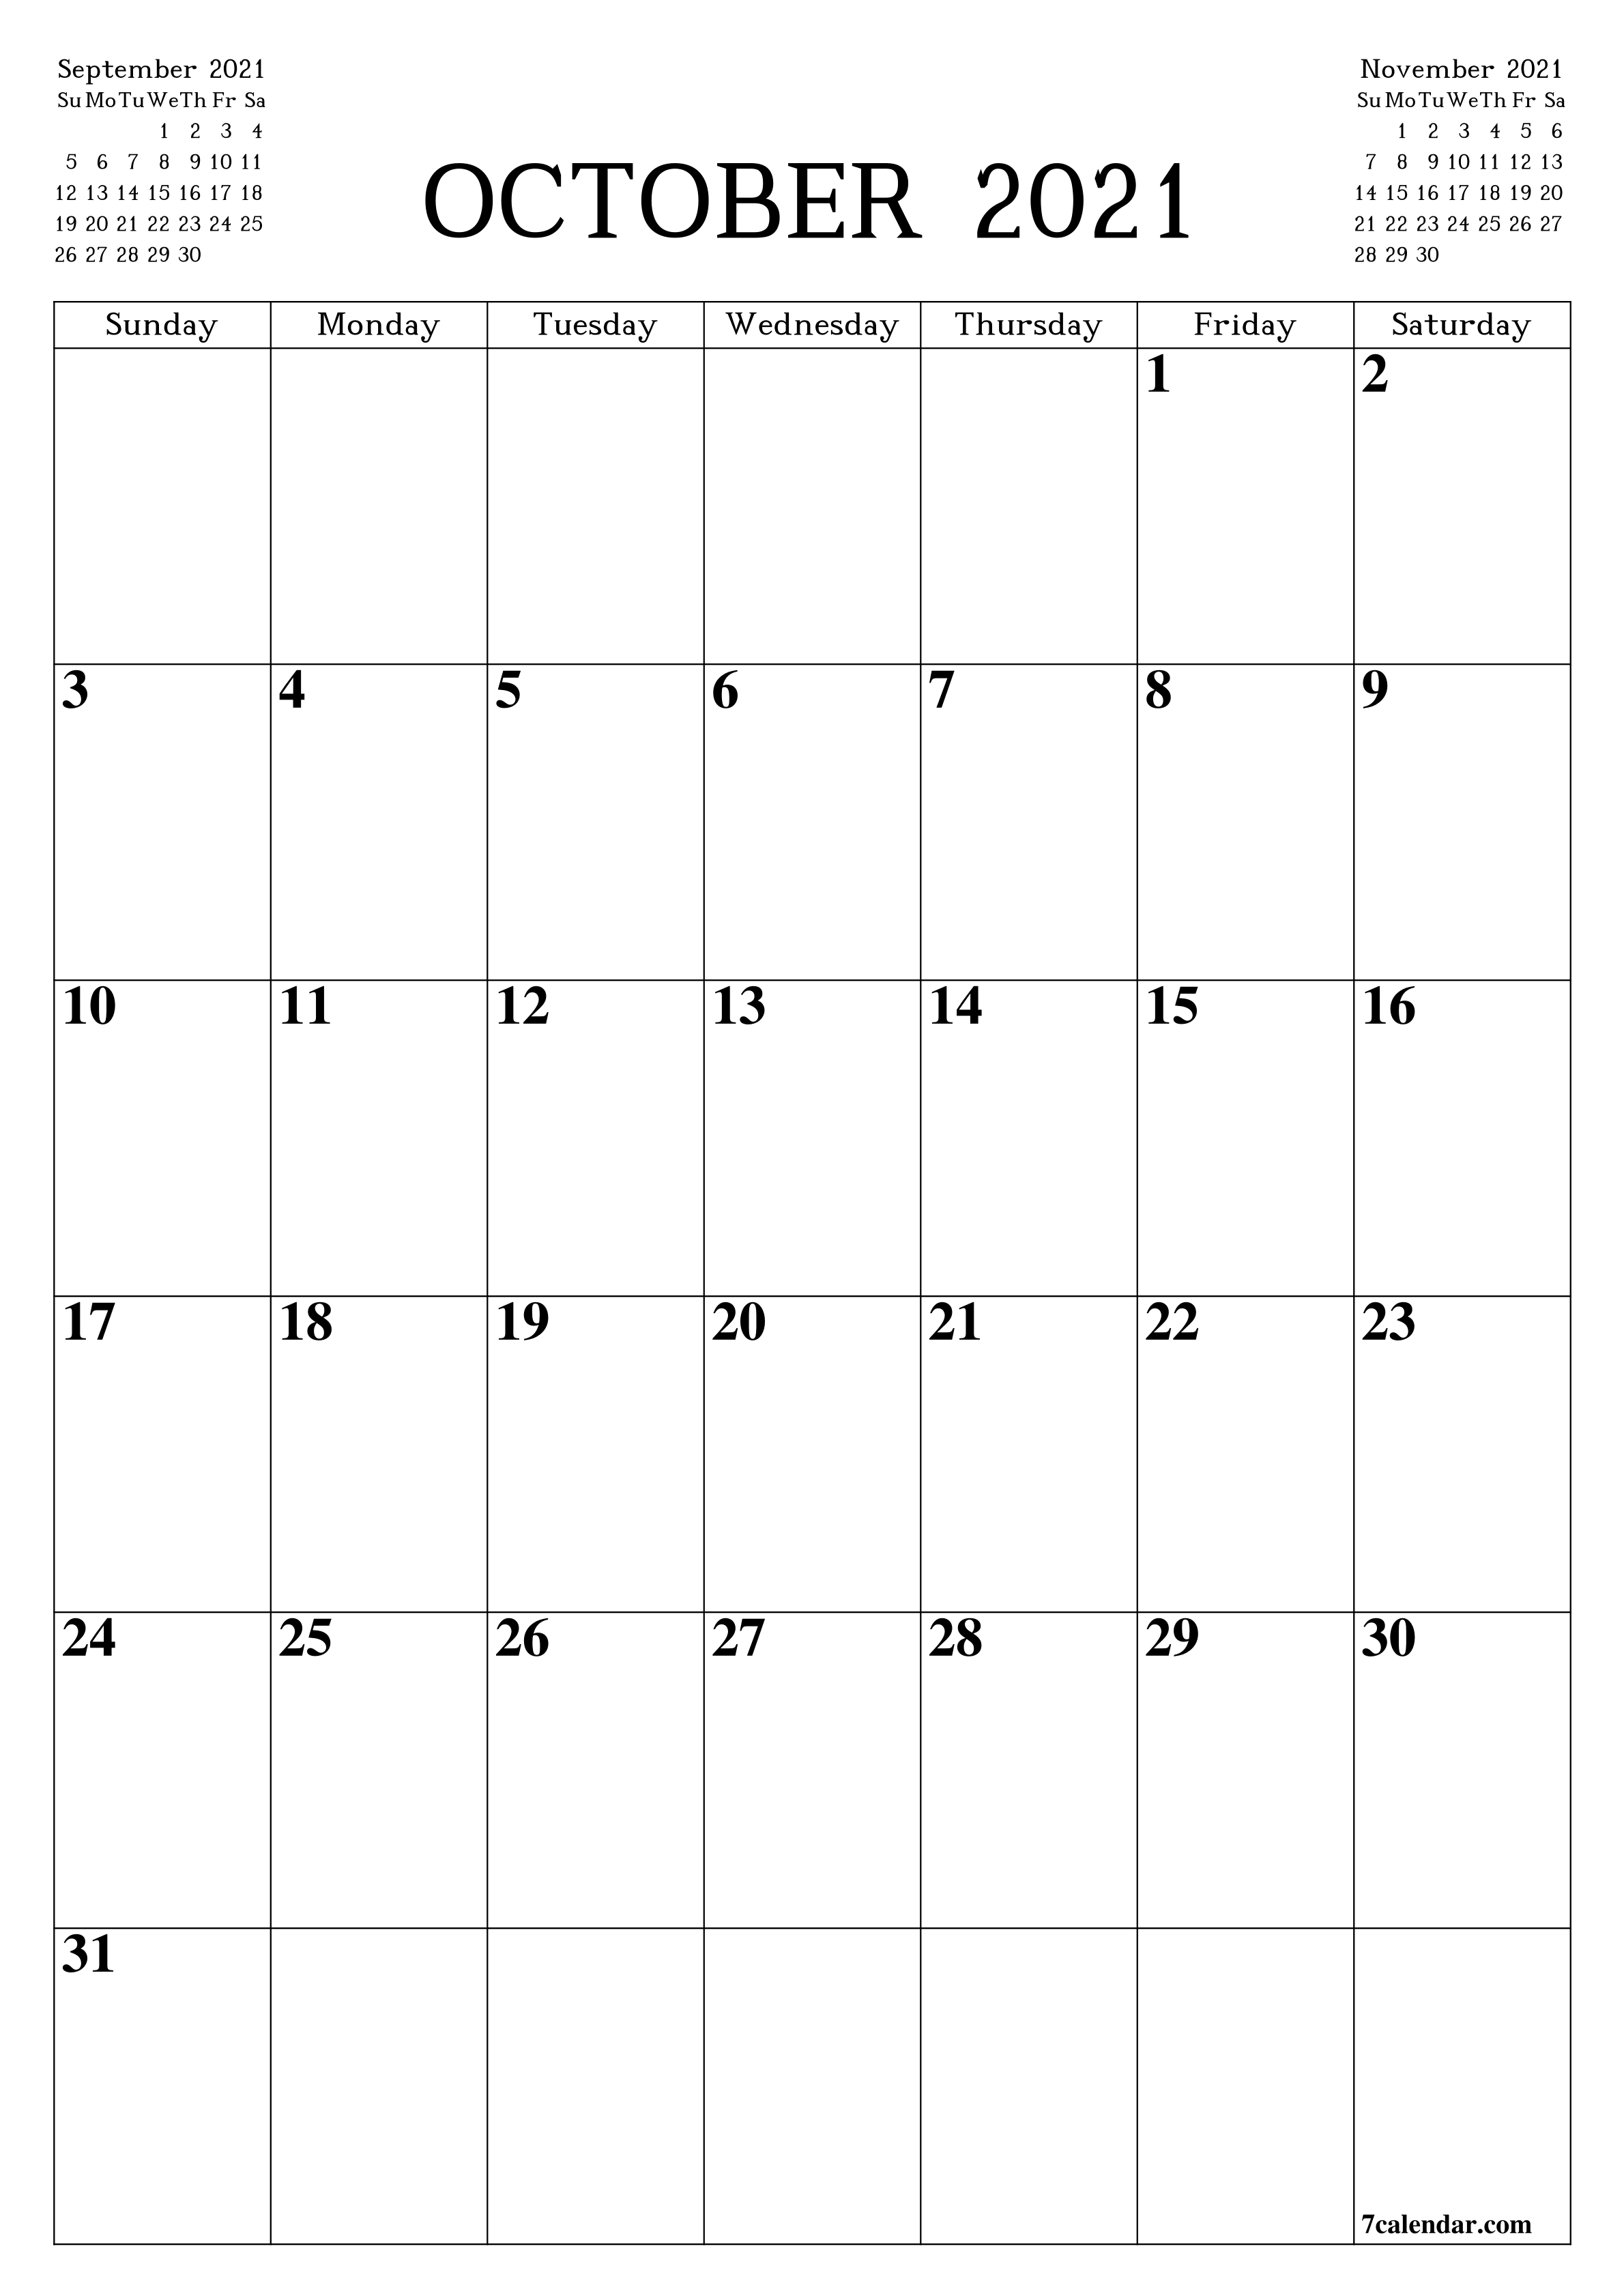 Printable Blank Calendar For October 2021 - Pdf And Png